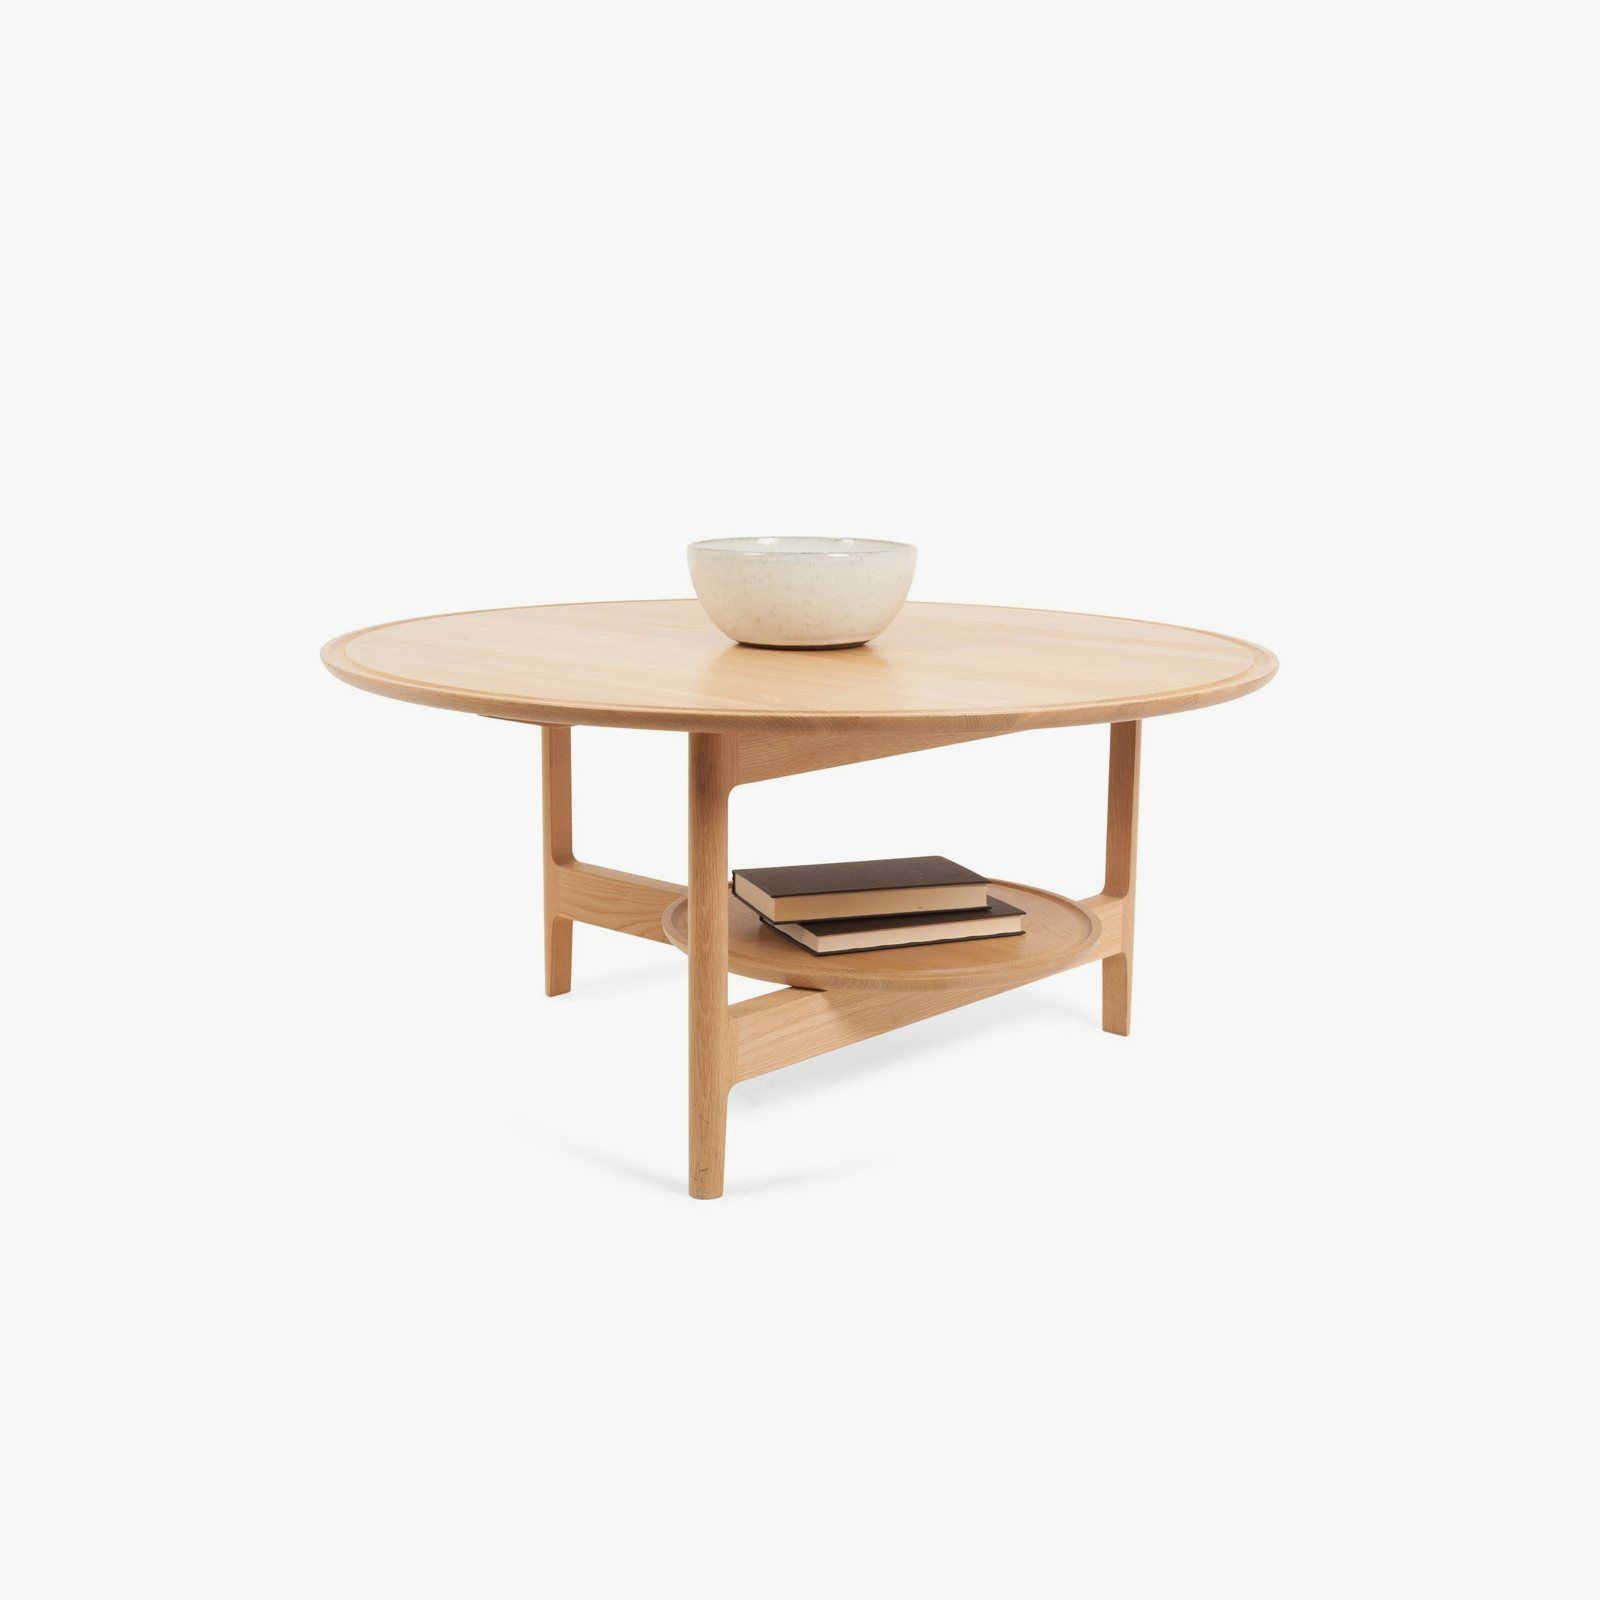 Svelto Coffee Table By Ercol Up Interiors Wooden Coffee Table Designs Wooden Coffee Table Coffee Table Design [ 1600 x 1600 Pixel ]